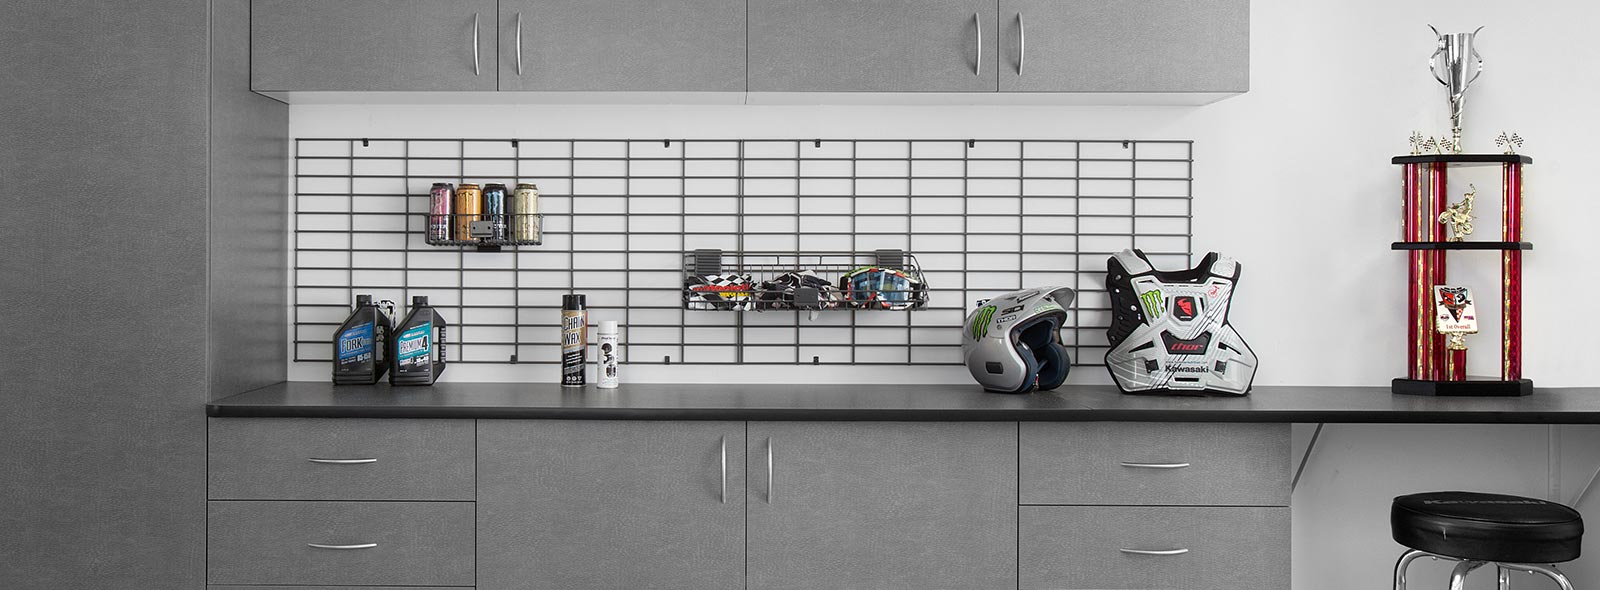 Image Result For Kitchen Shelf With Hooks